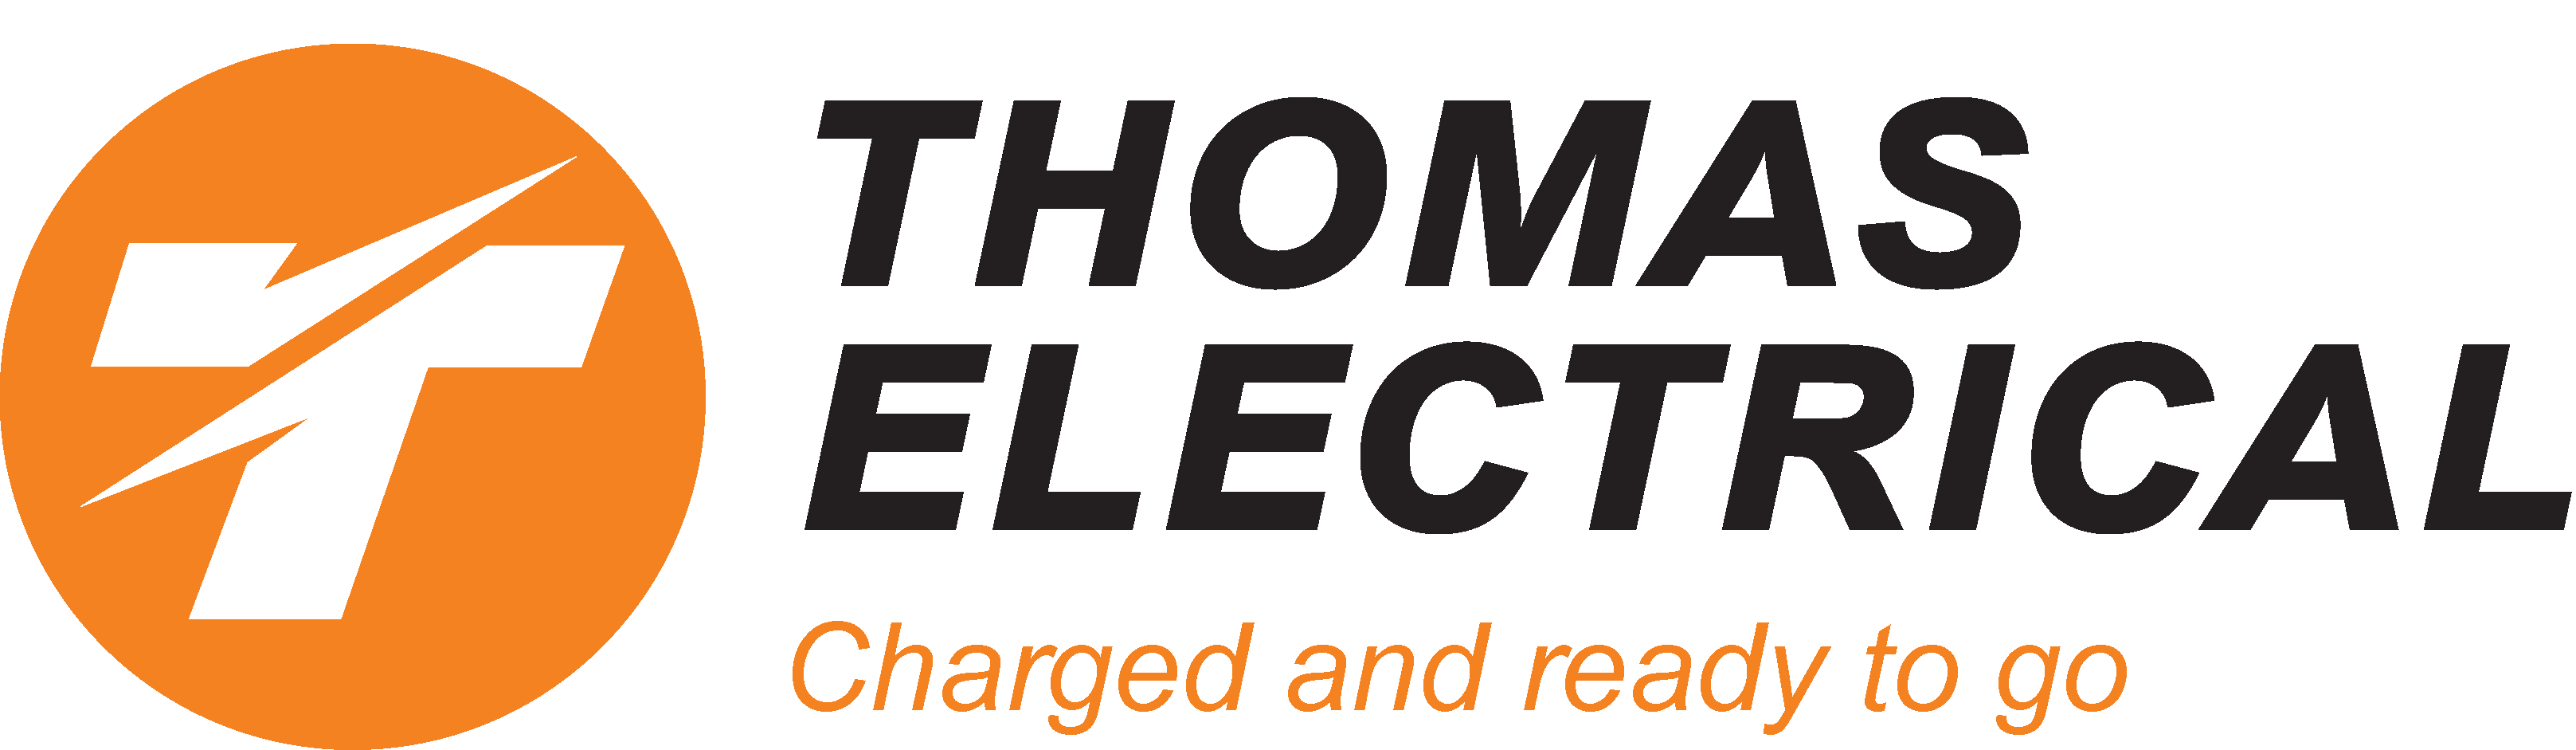 Thomas Electrical, Thomas Solar, Thomas Compliant